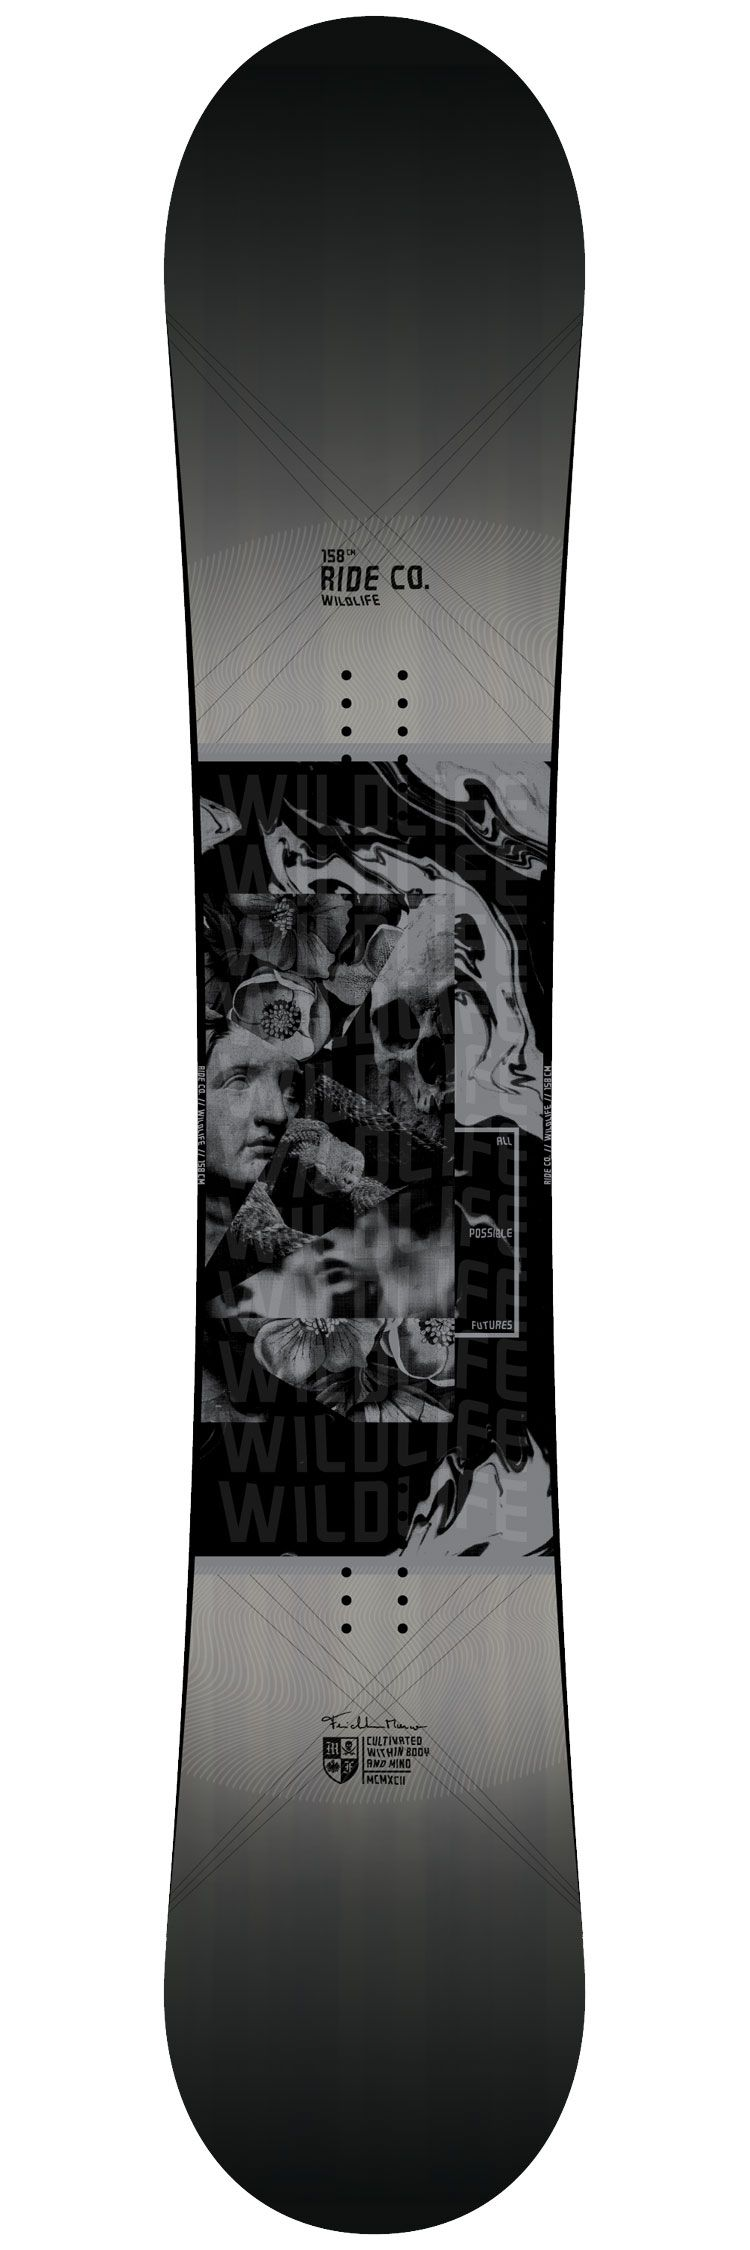 Medium image of lib tech t  rice banana hammock snowboard   skate design  graphisme   pinterest